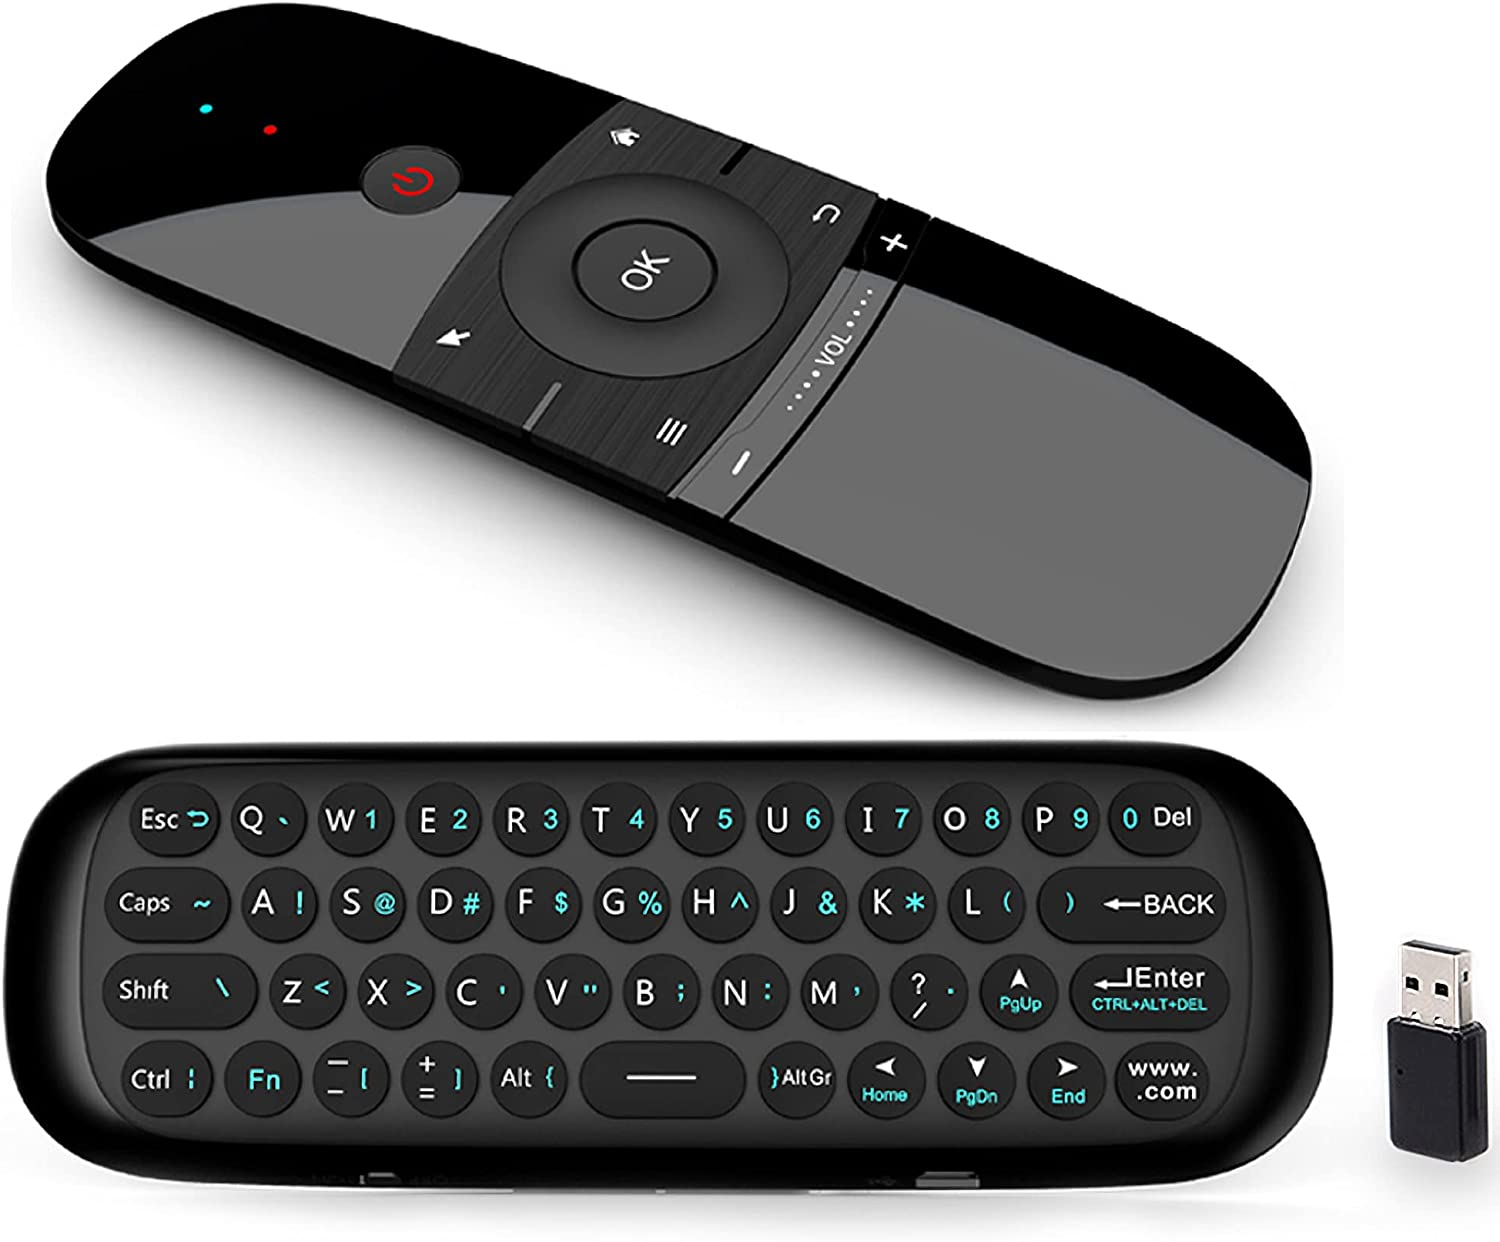 Air Mouse Remote Control,Upgrade W1 Universal 2.4GHz,Wireless Keyboard and Mouse Combo for Smart TV/Nvidia Shield/Android TV Box/HTPC/Mac/PC/Projector